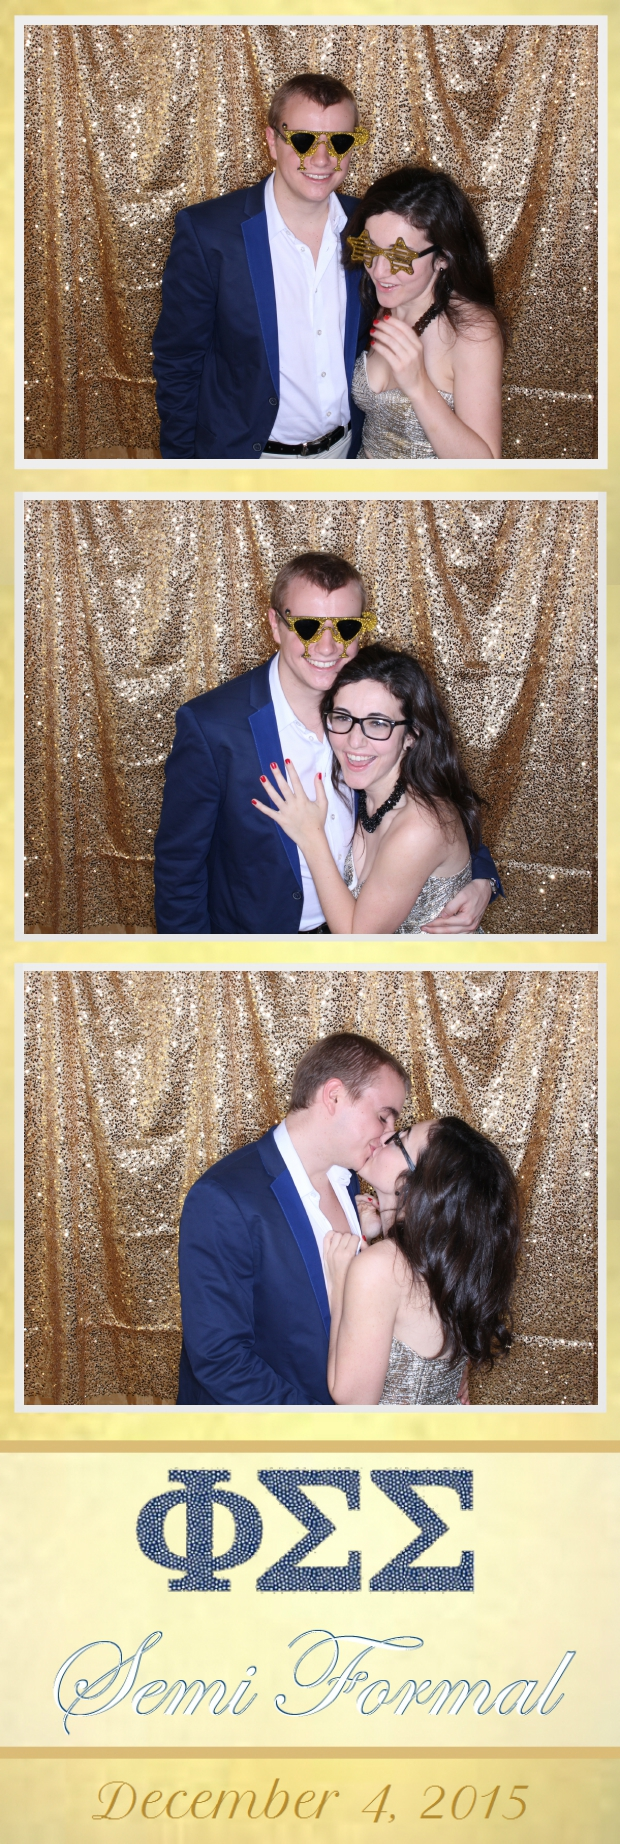 Guest House Events Photo Booth Phi Sigma Sigma Semi Formal (15).jpg